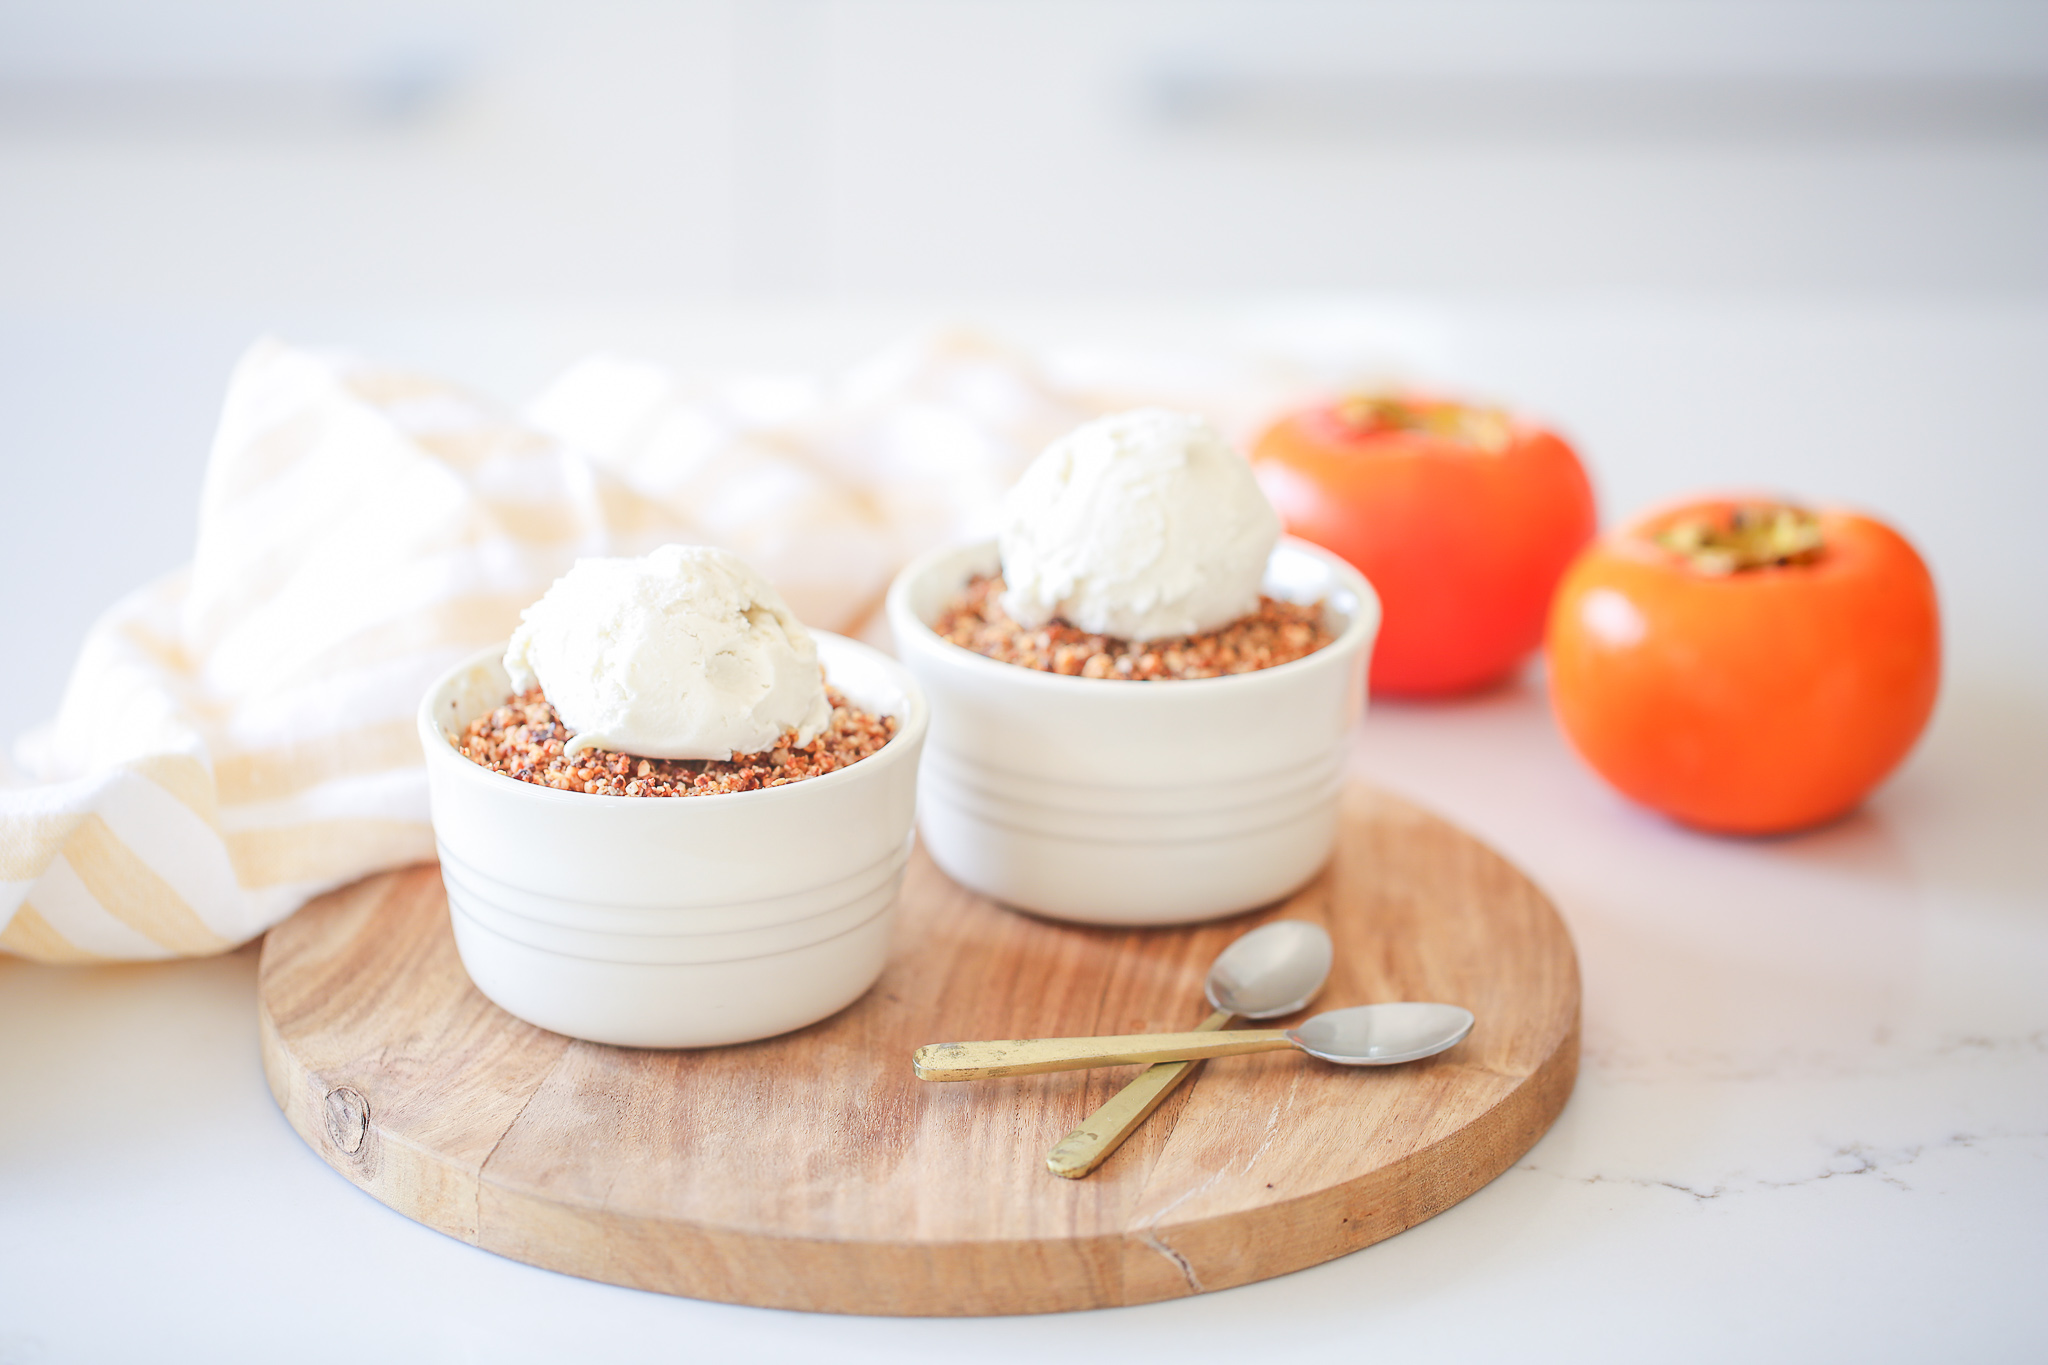 Apple and Persimmon Crumbles - Be Good